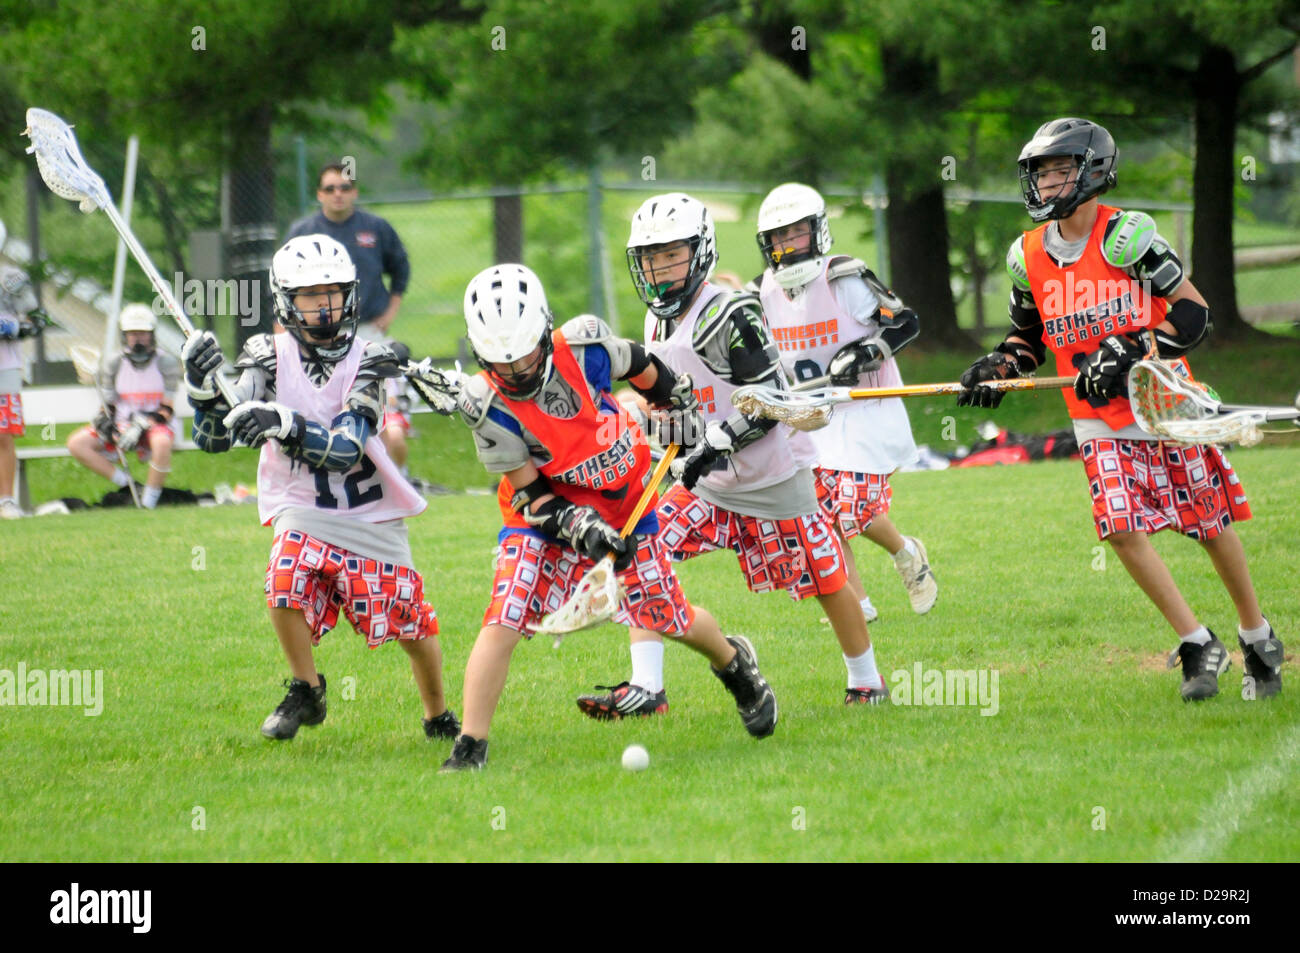 Lacrosse Game - Maryland - Stock Image